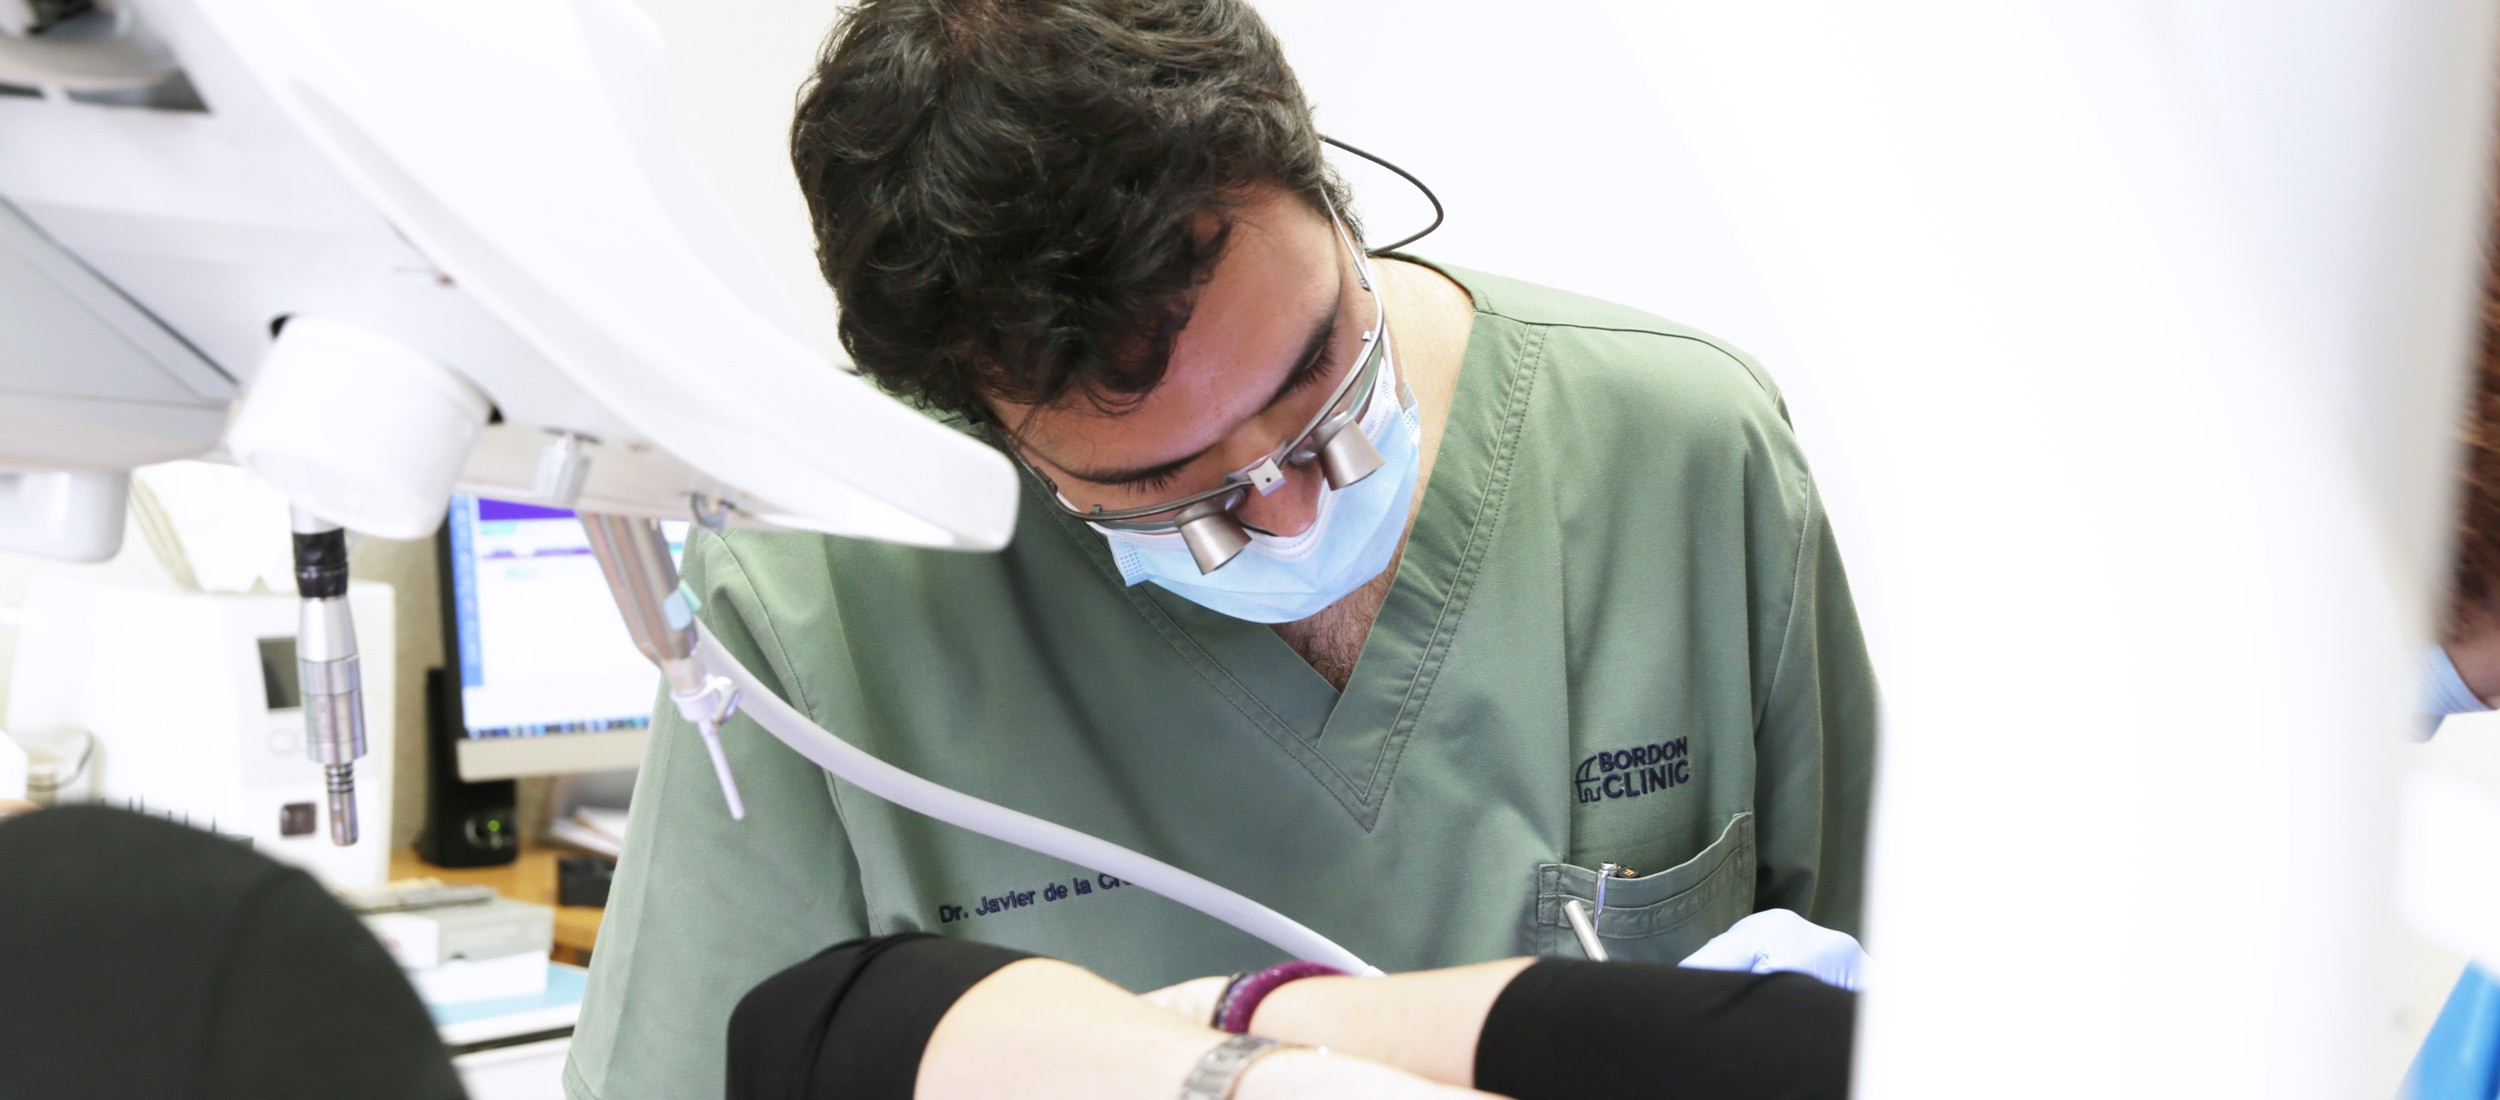 Dr. Javier de la Cruz Dentistas Madrid Clinica dental en Madrid